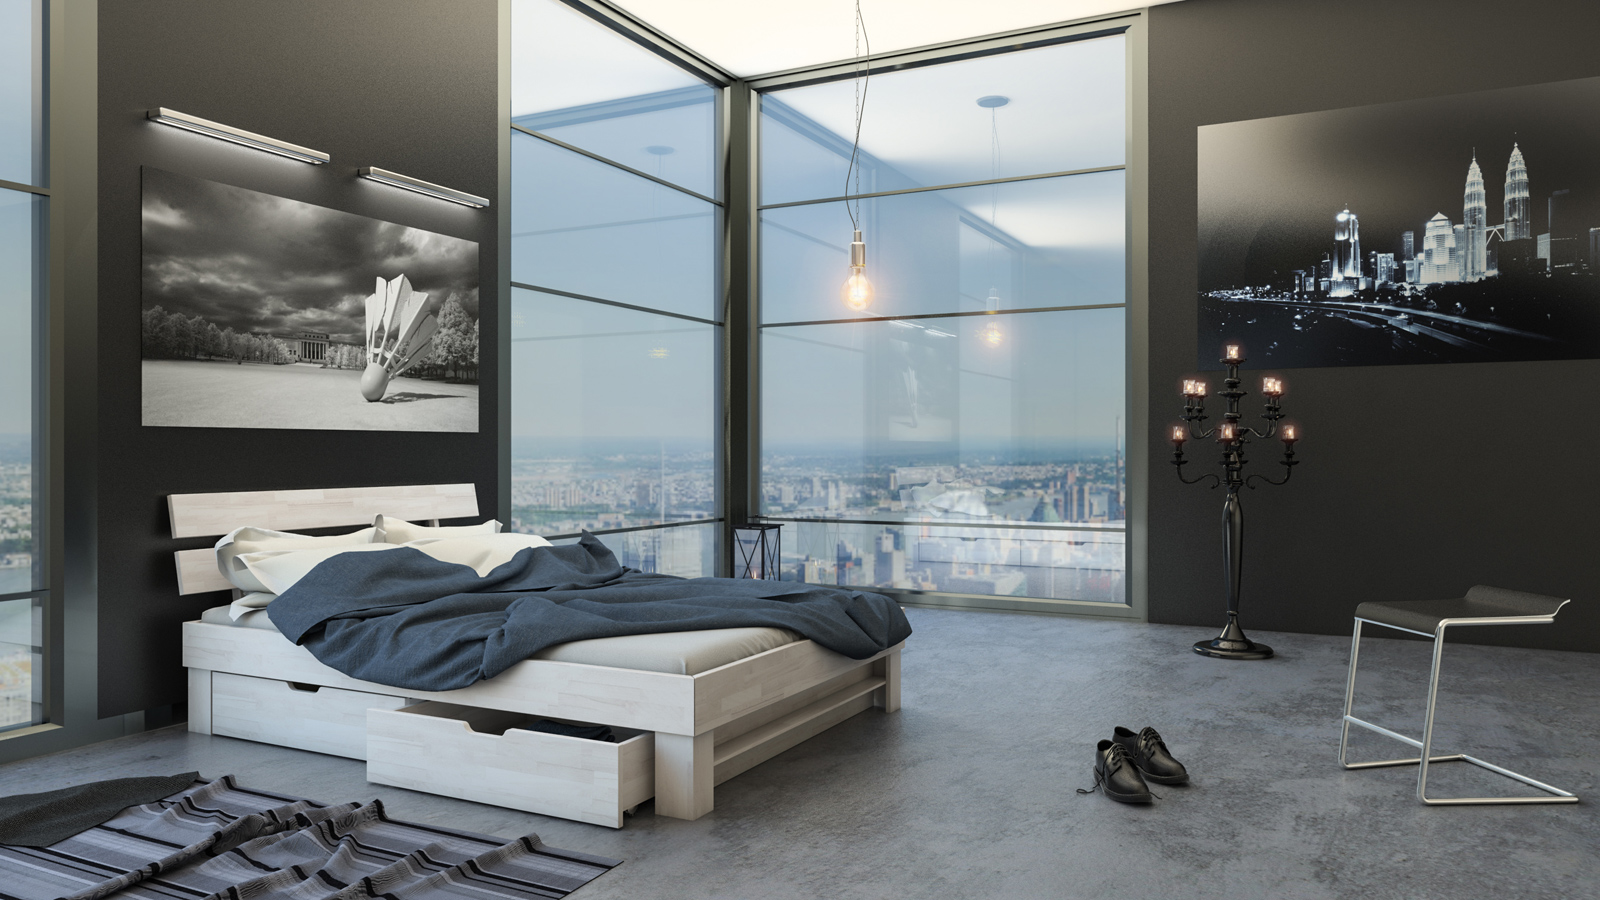 sam massivholzbett 140 x 200 cm buche wei mit bettk sten julia demn chst. Black Bedroom Furniture Sets. Home Design Ideas